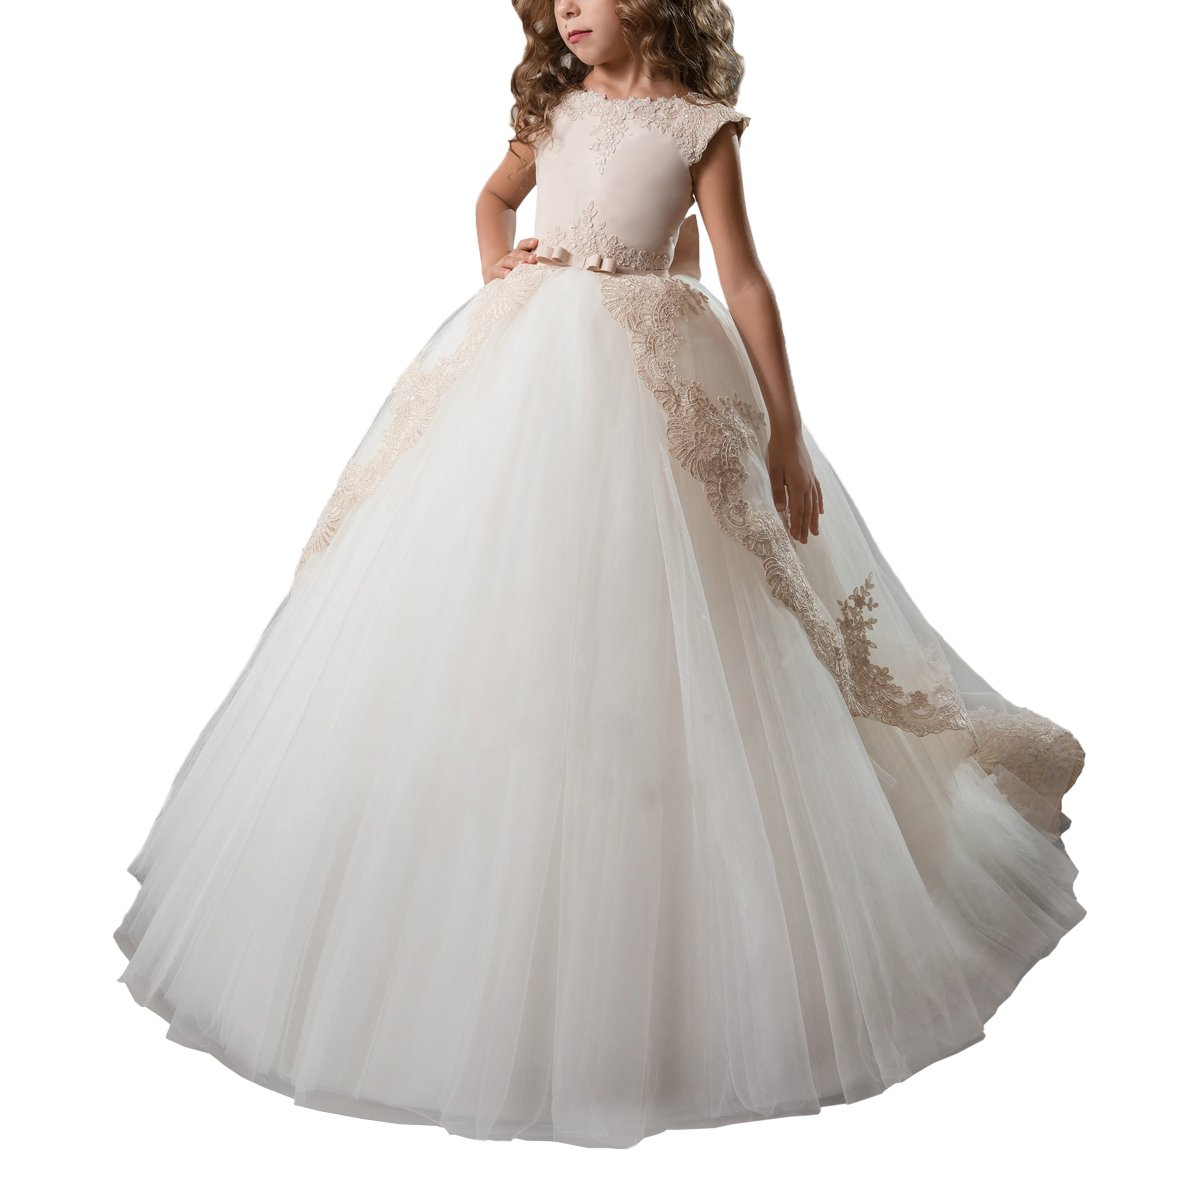 AbaoSisters Fancy Flower Girl Dress Satin Lace Pageant Ball Gown Champagne Size 2